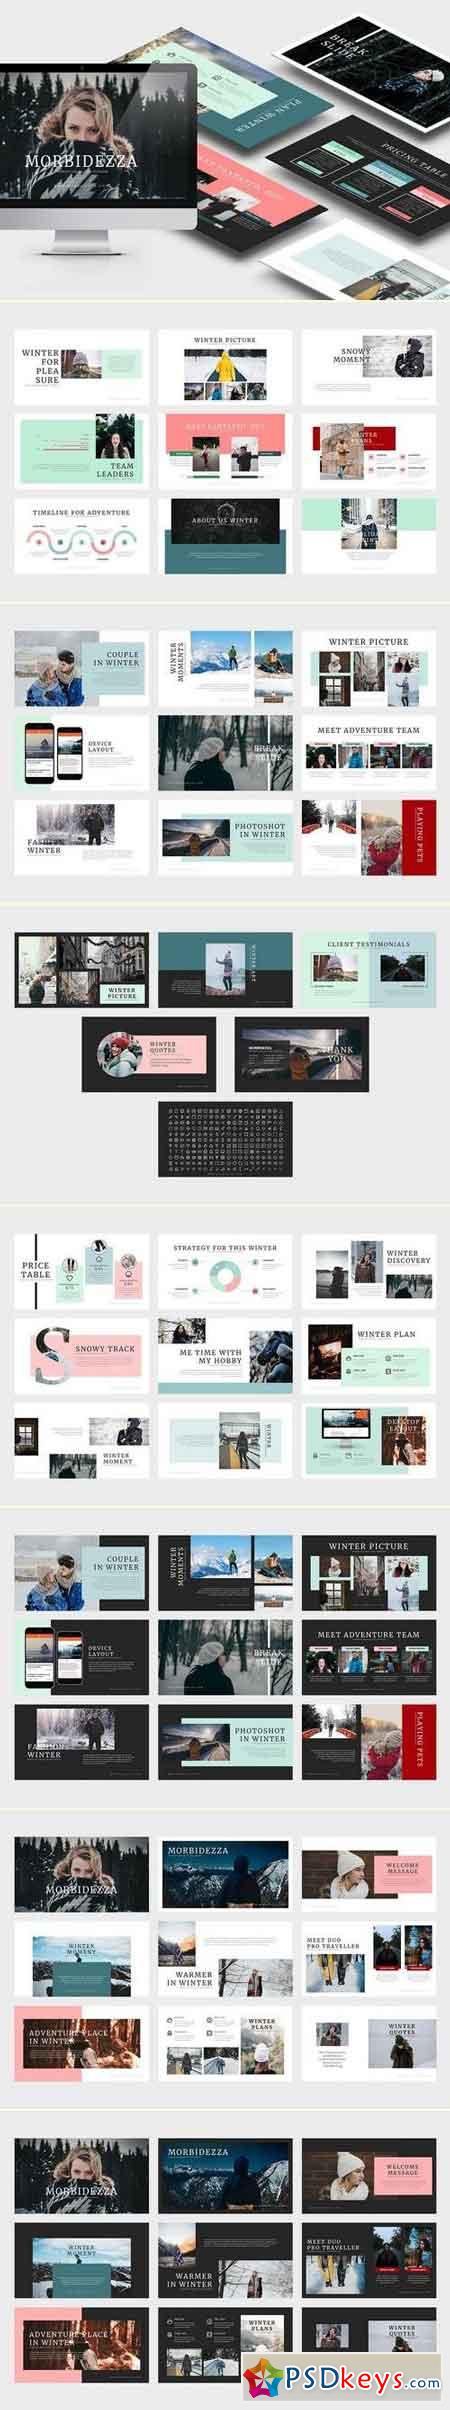 Morbidezza Winter Keynote Template